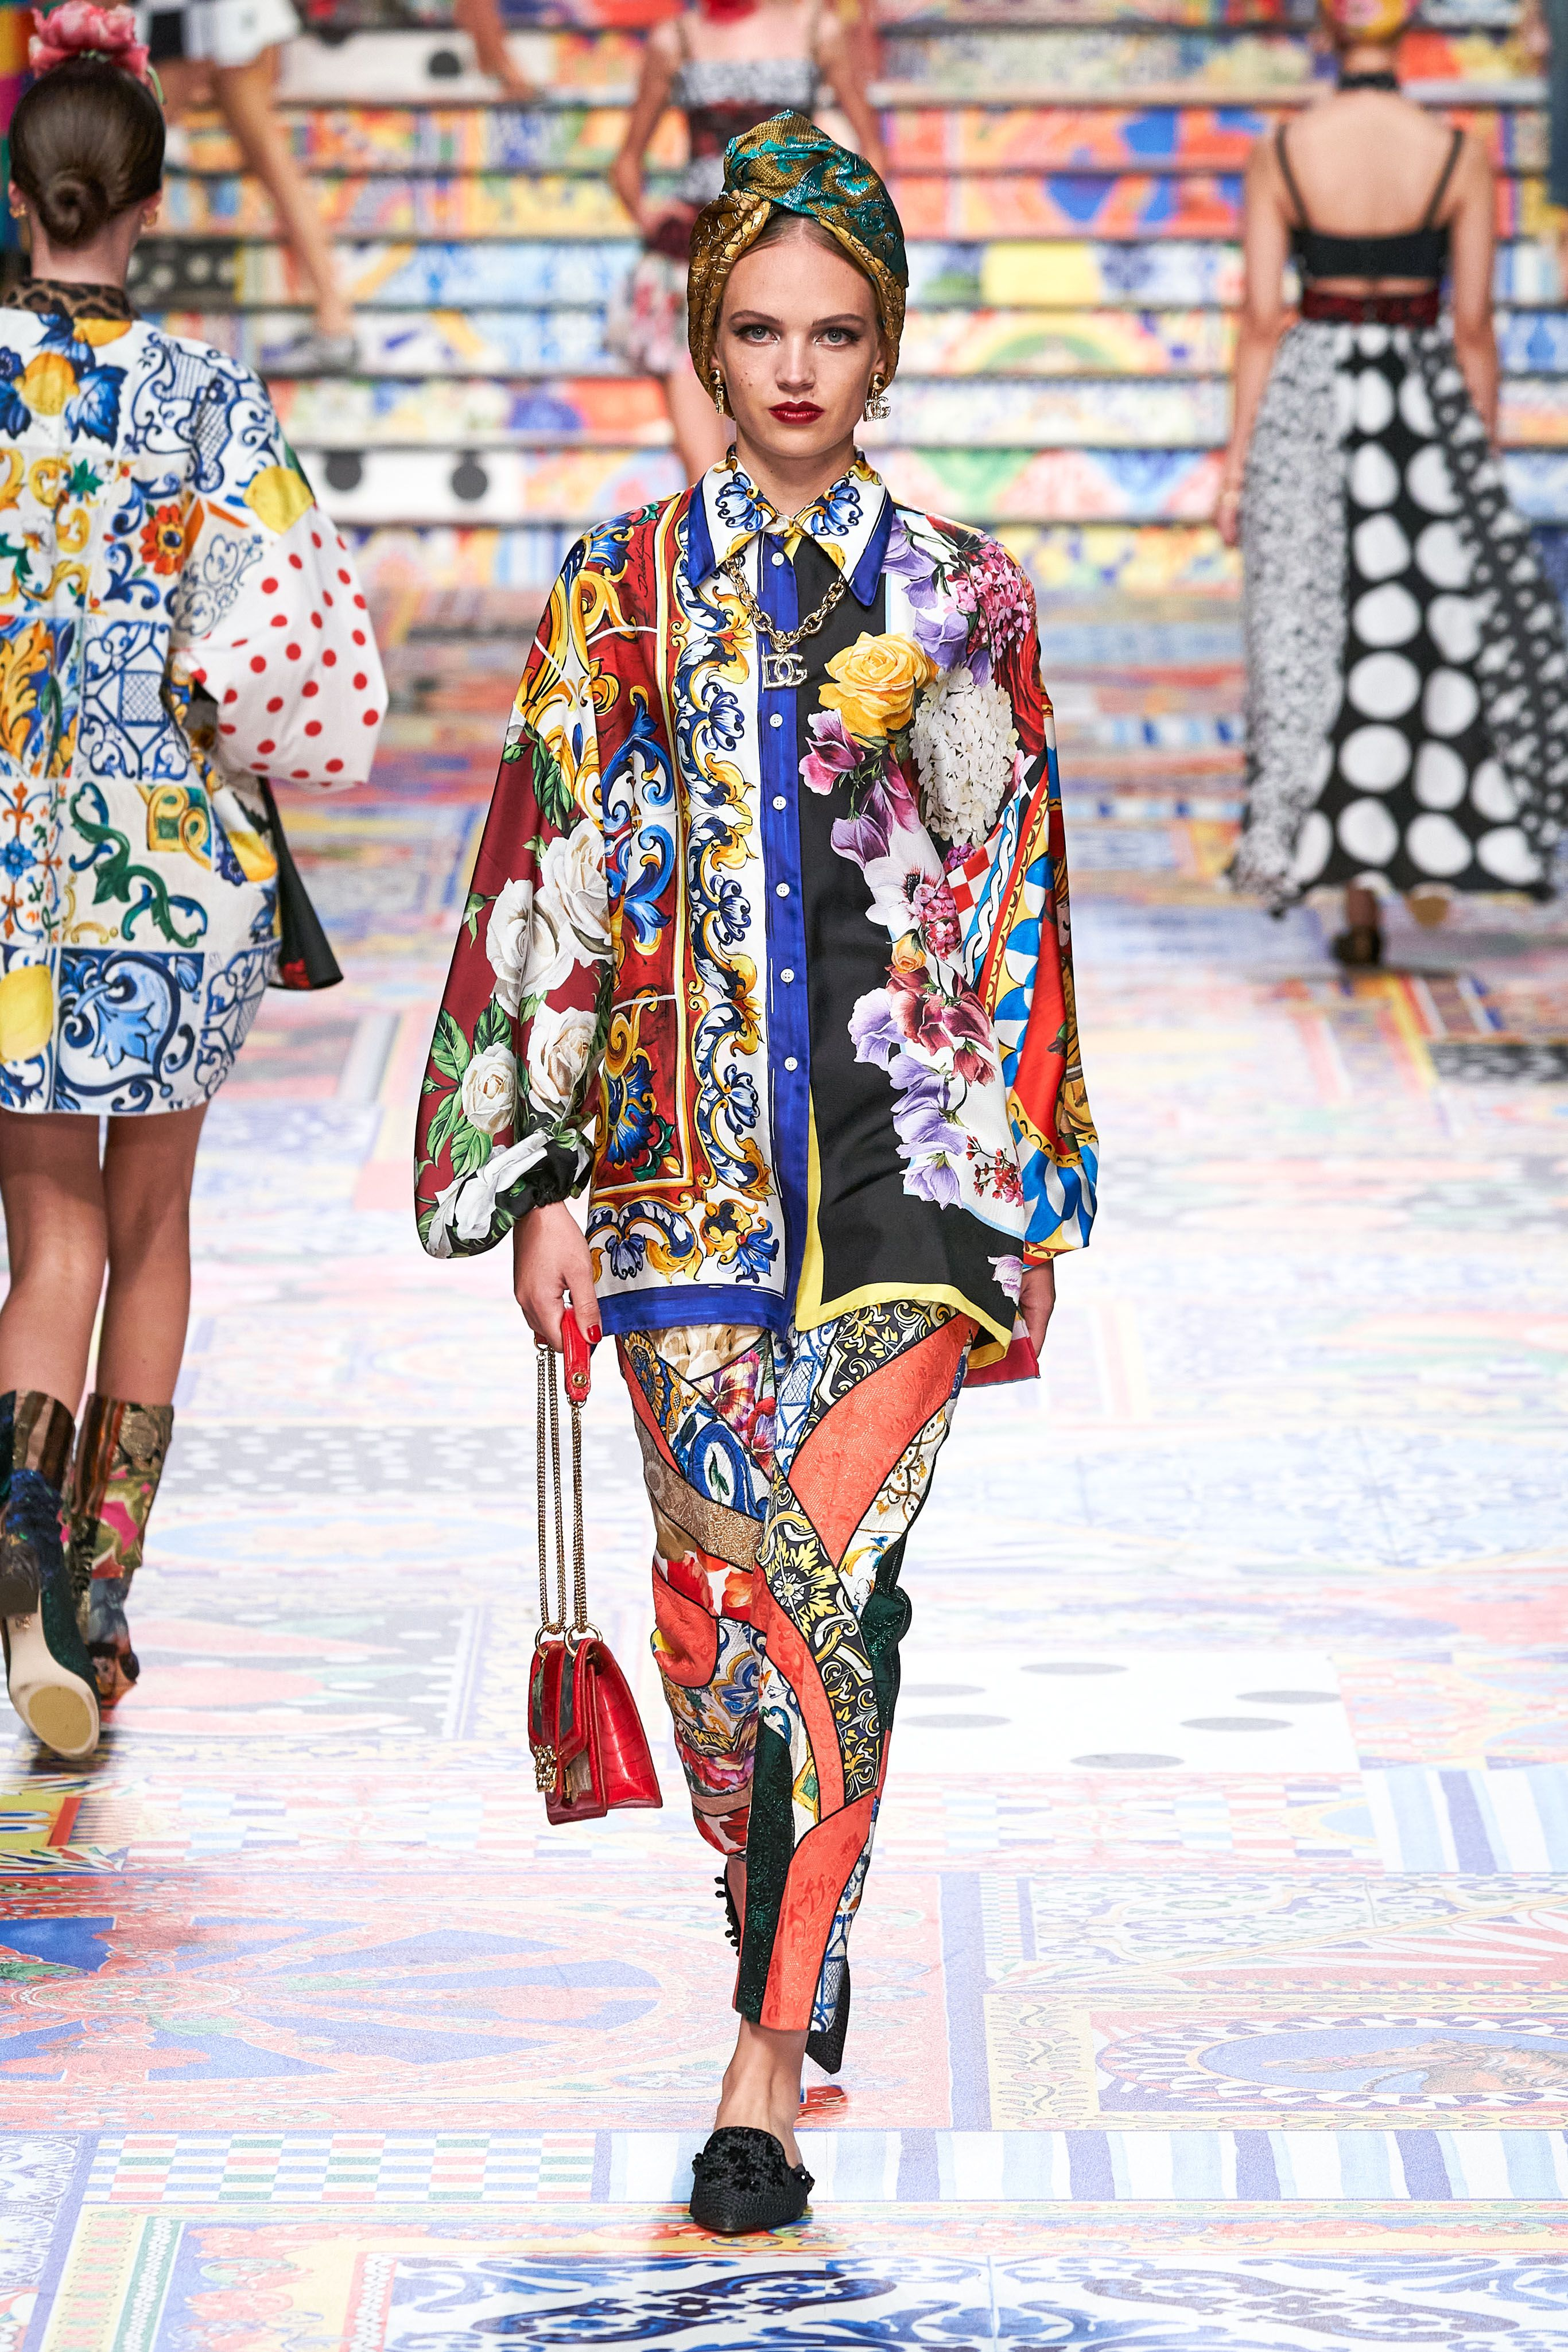 Dolce & Gabbana Spring 6 Ready-to-Wear Collection - Vogue